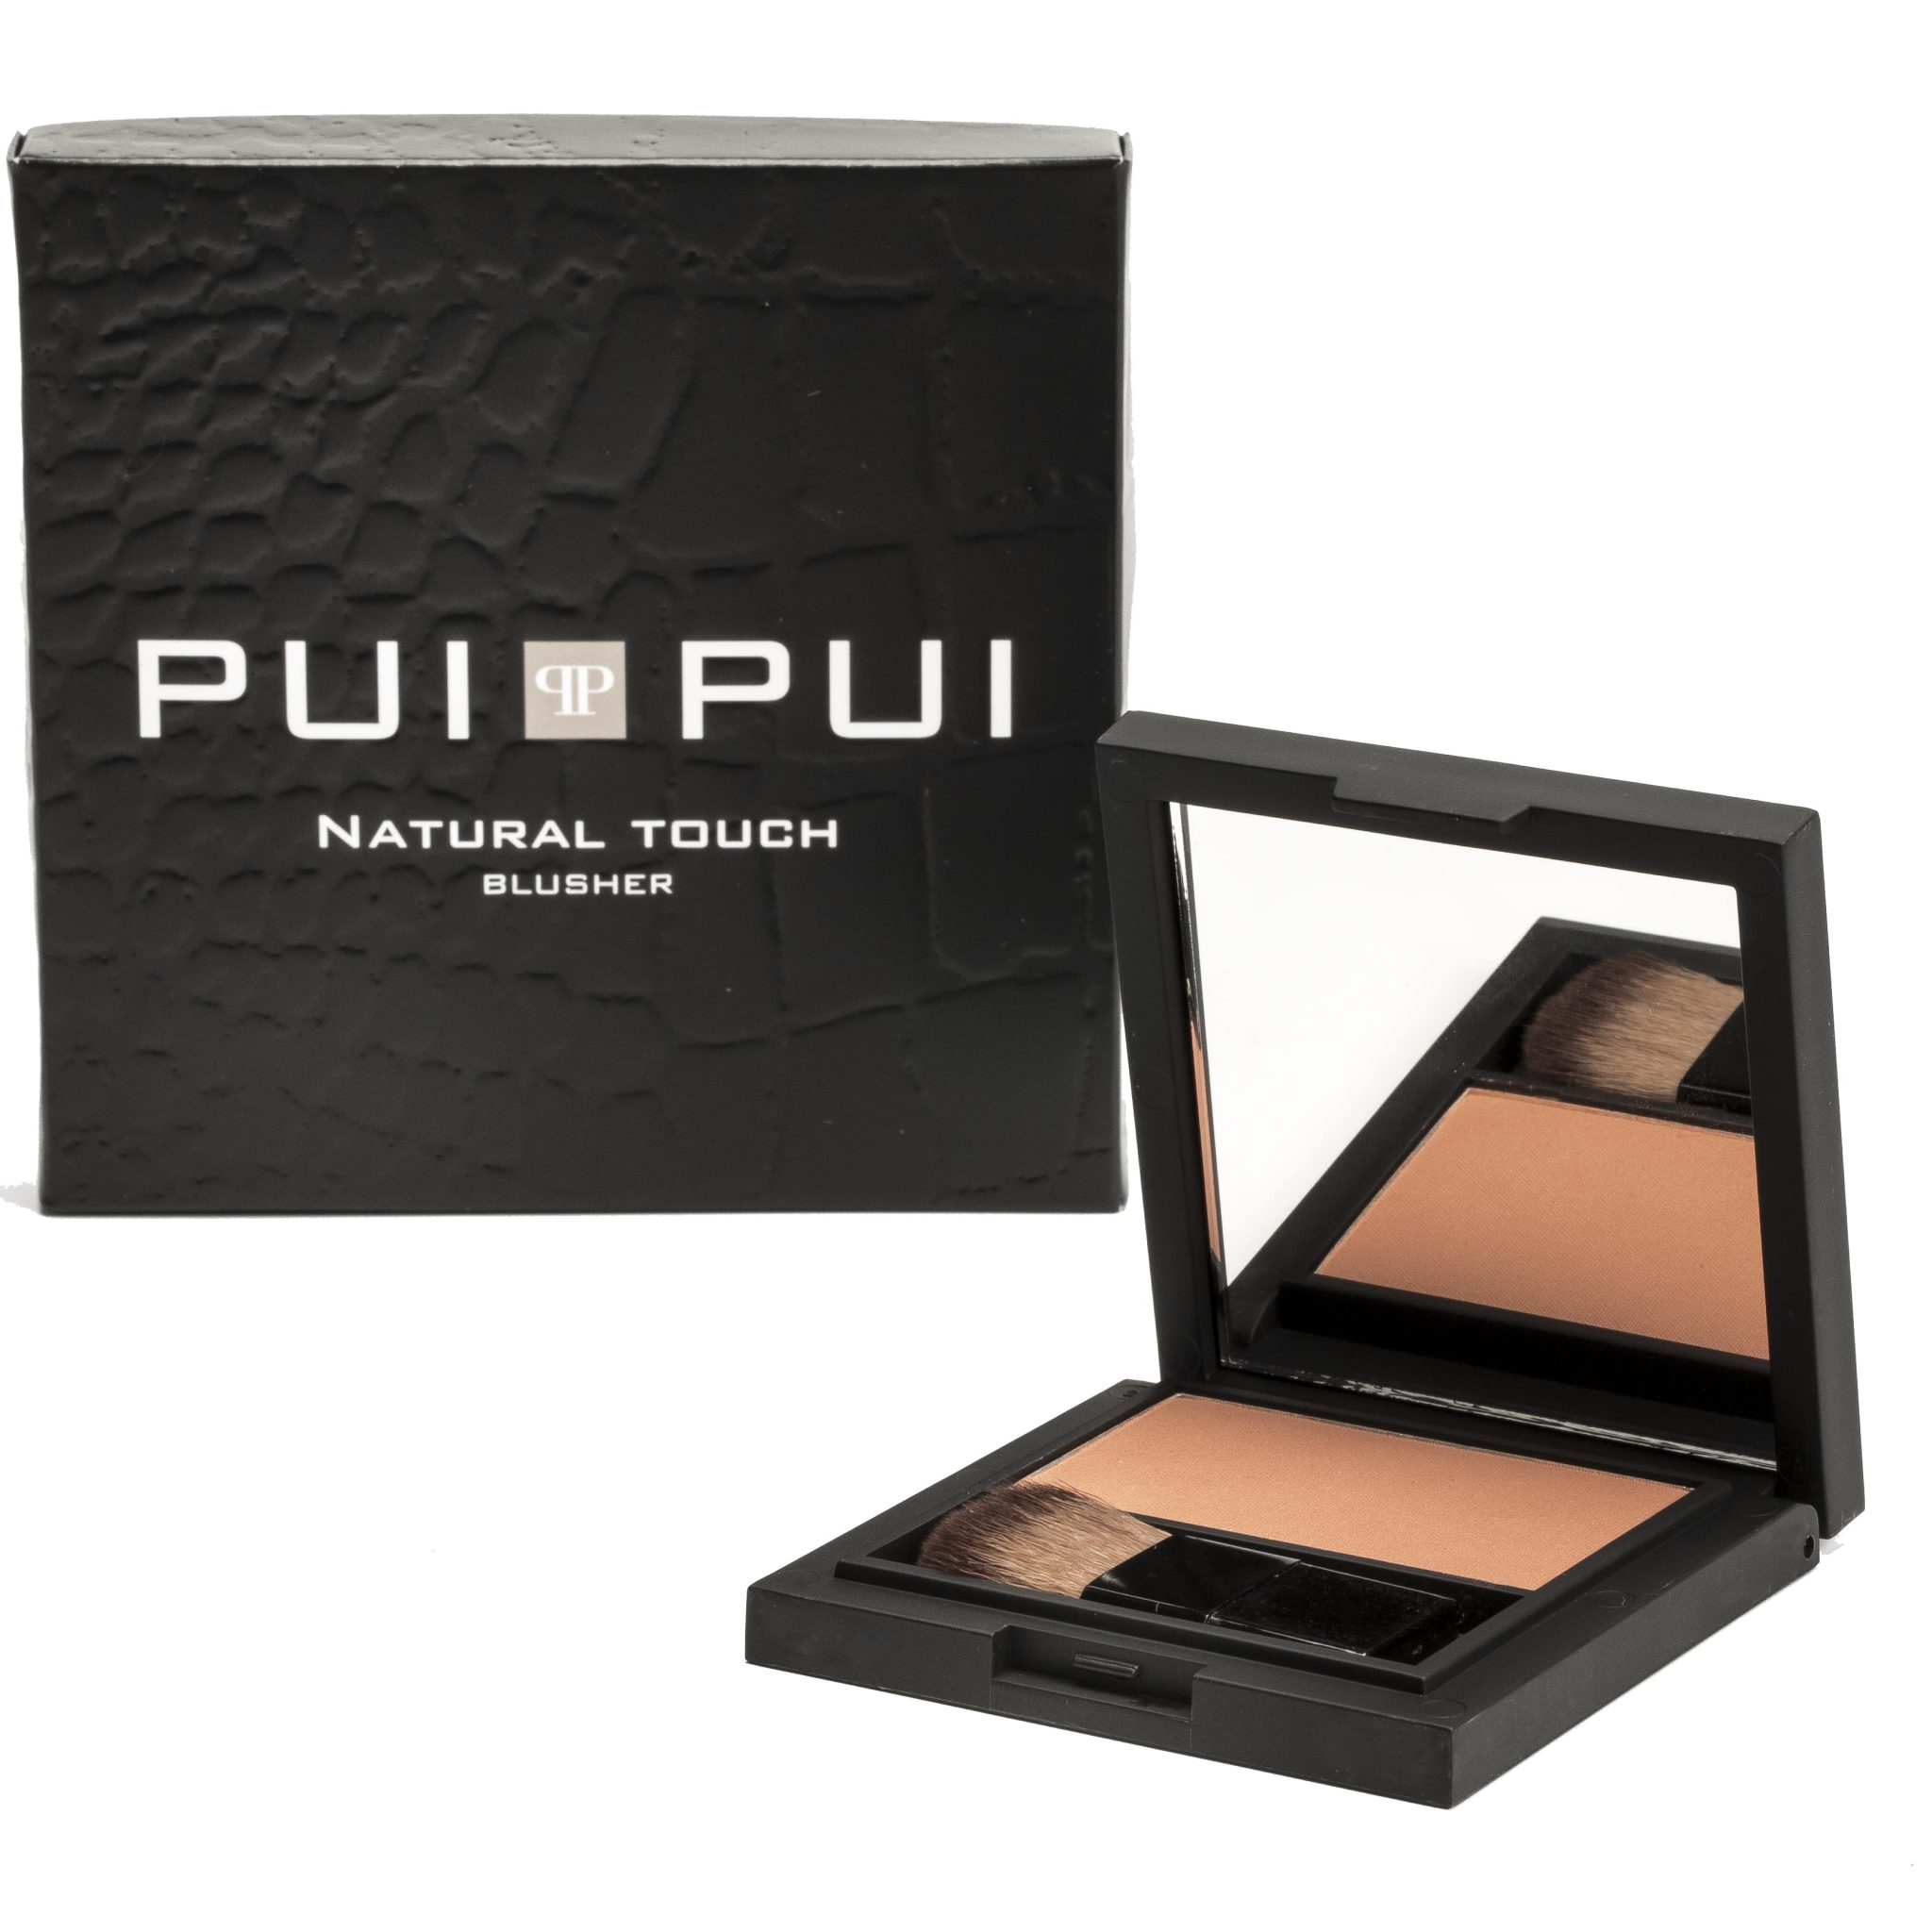 25602 natural touch blusher - vrij